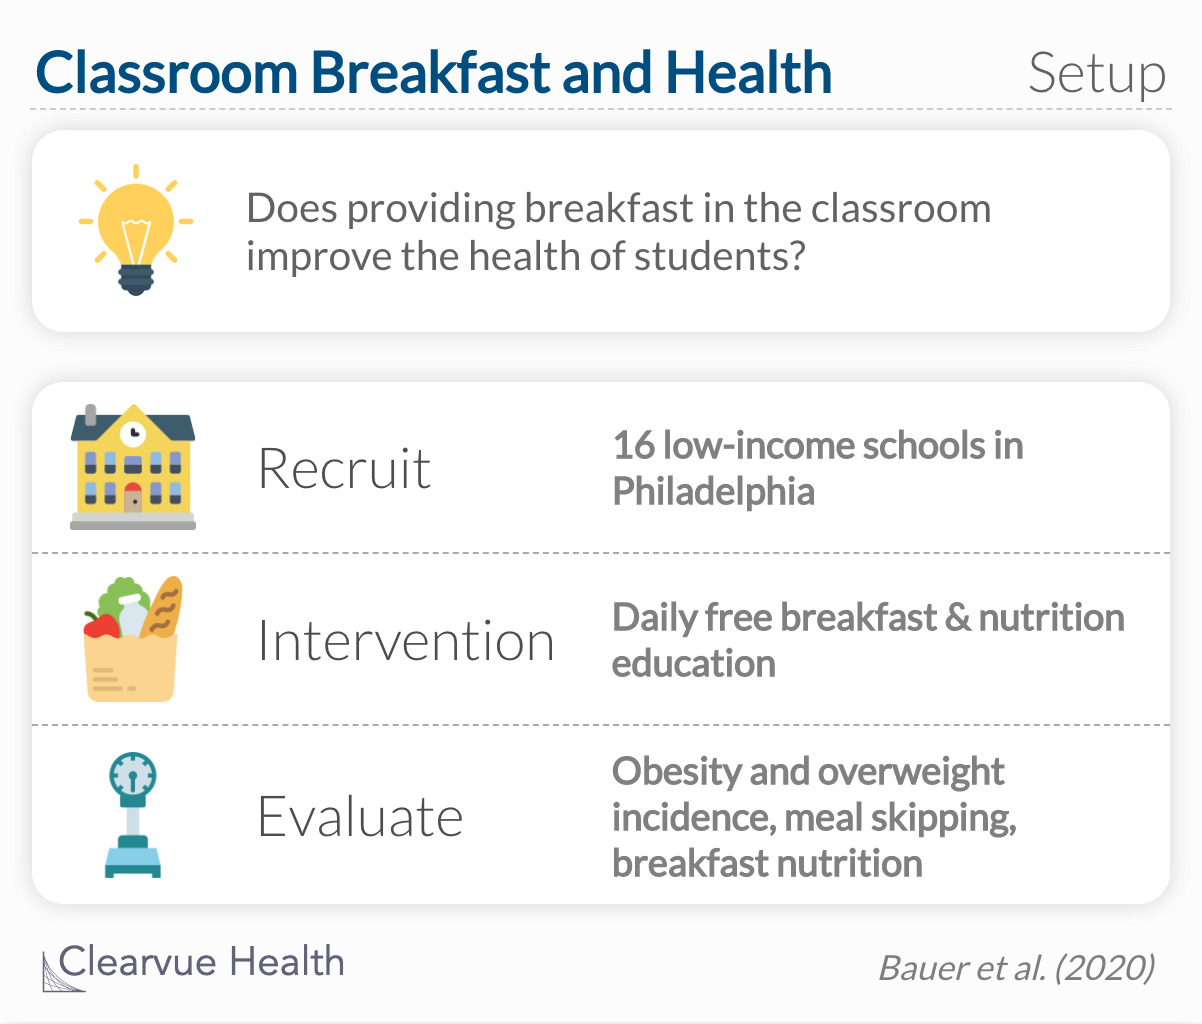 does providing breakfast in the classroom improve the health of students?